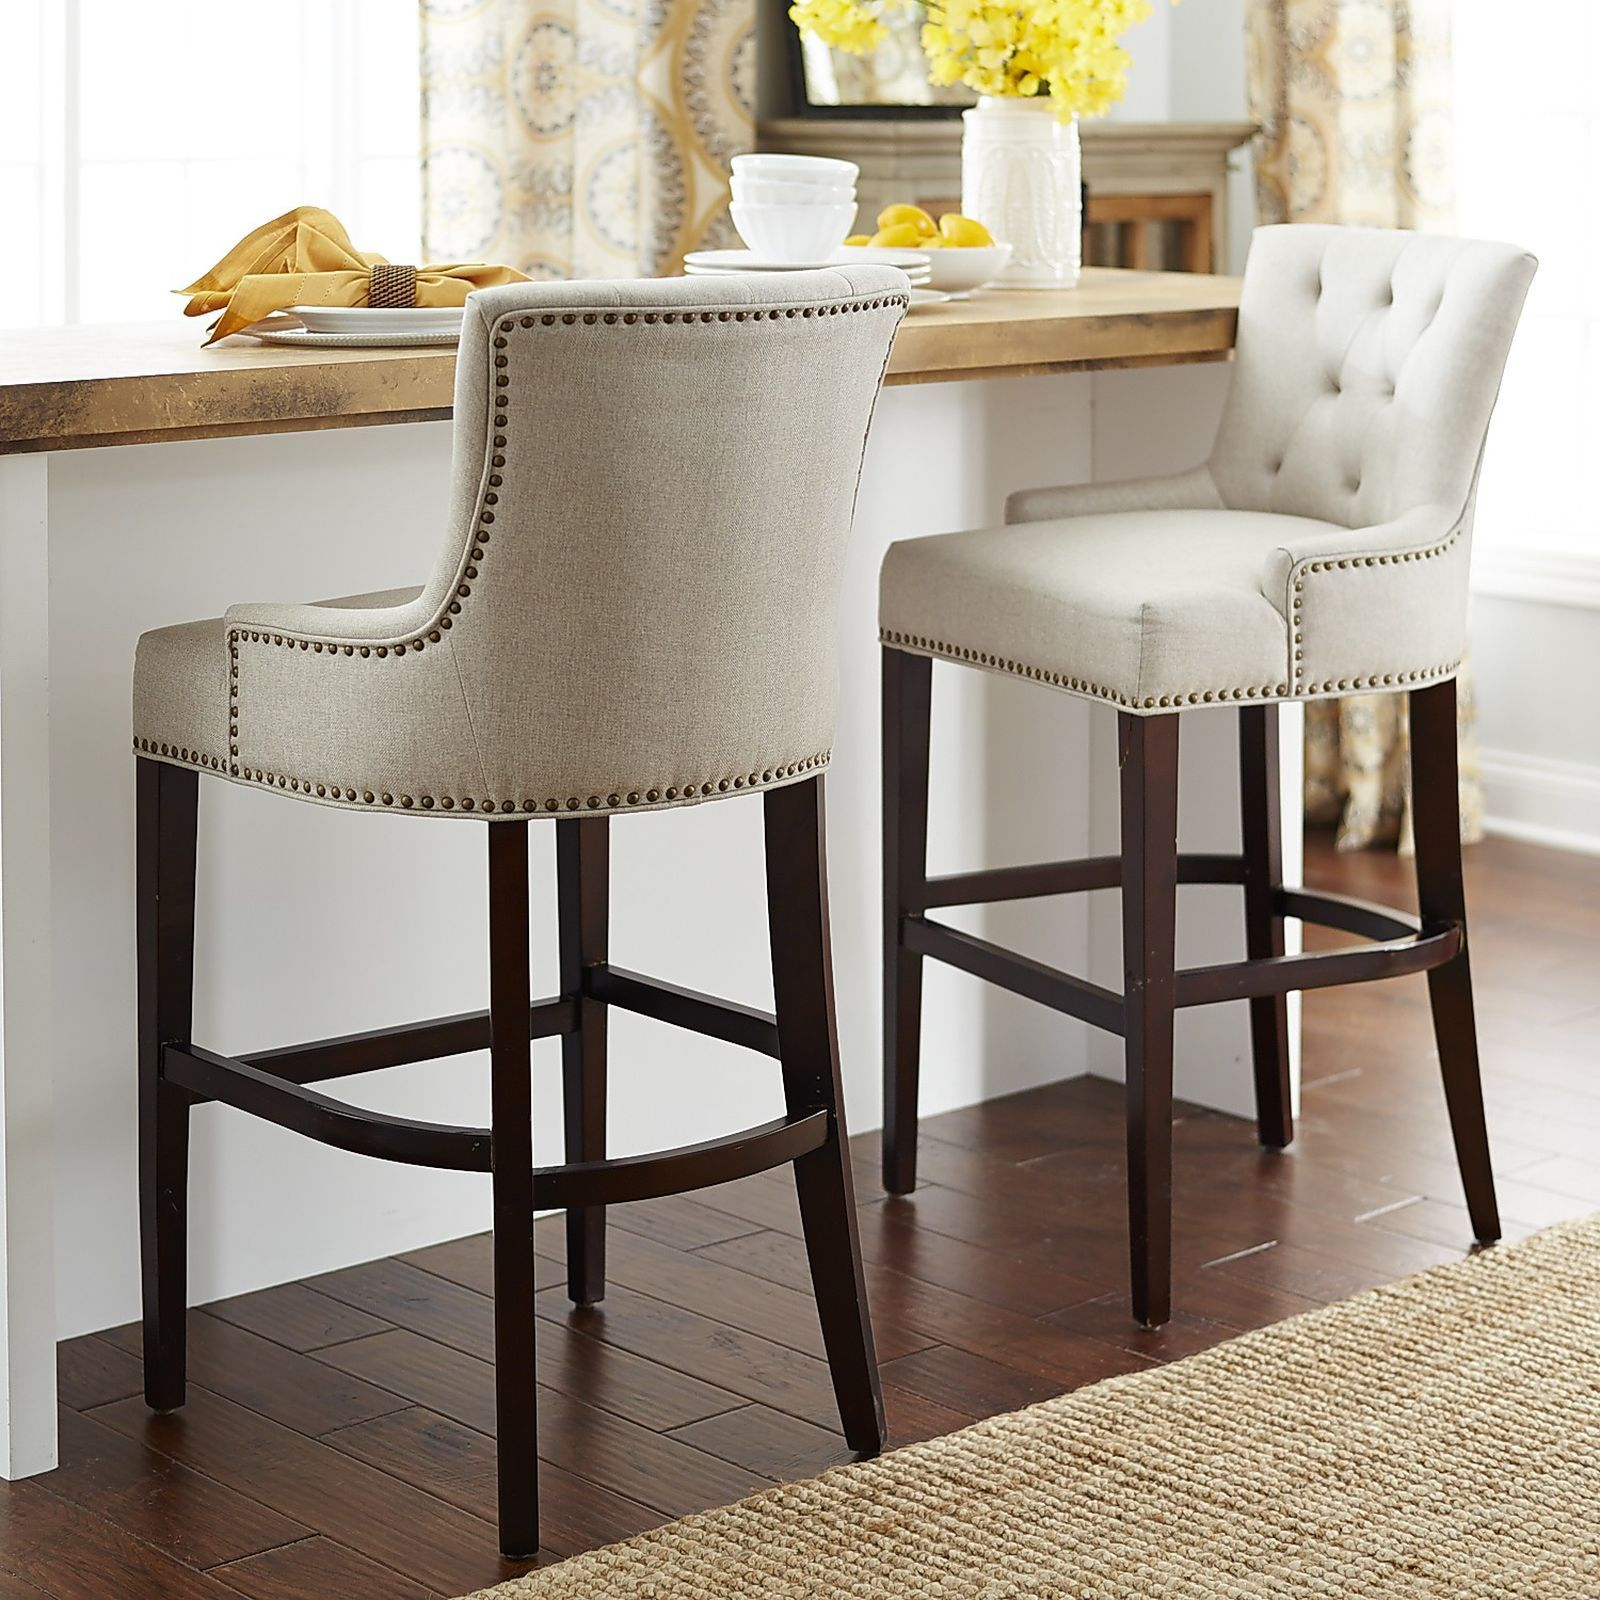 Our Ava stools offer a most elegant perch. Classic tailoring